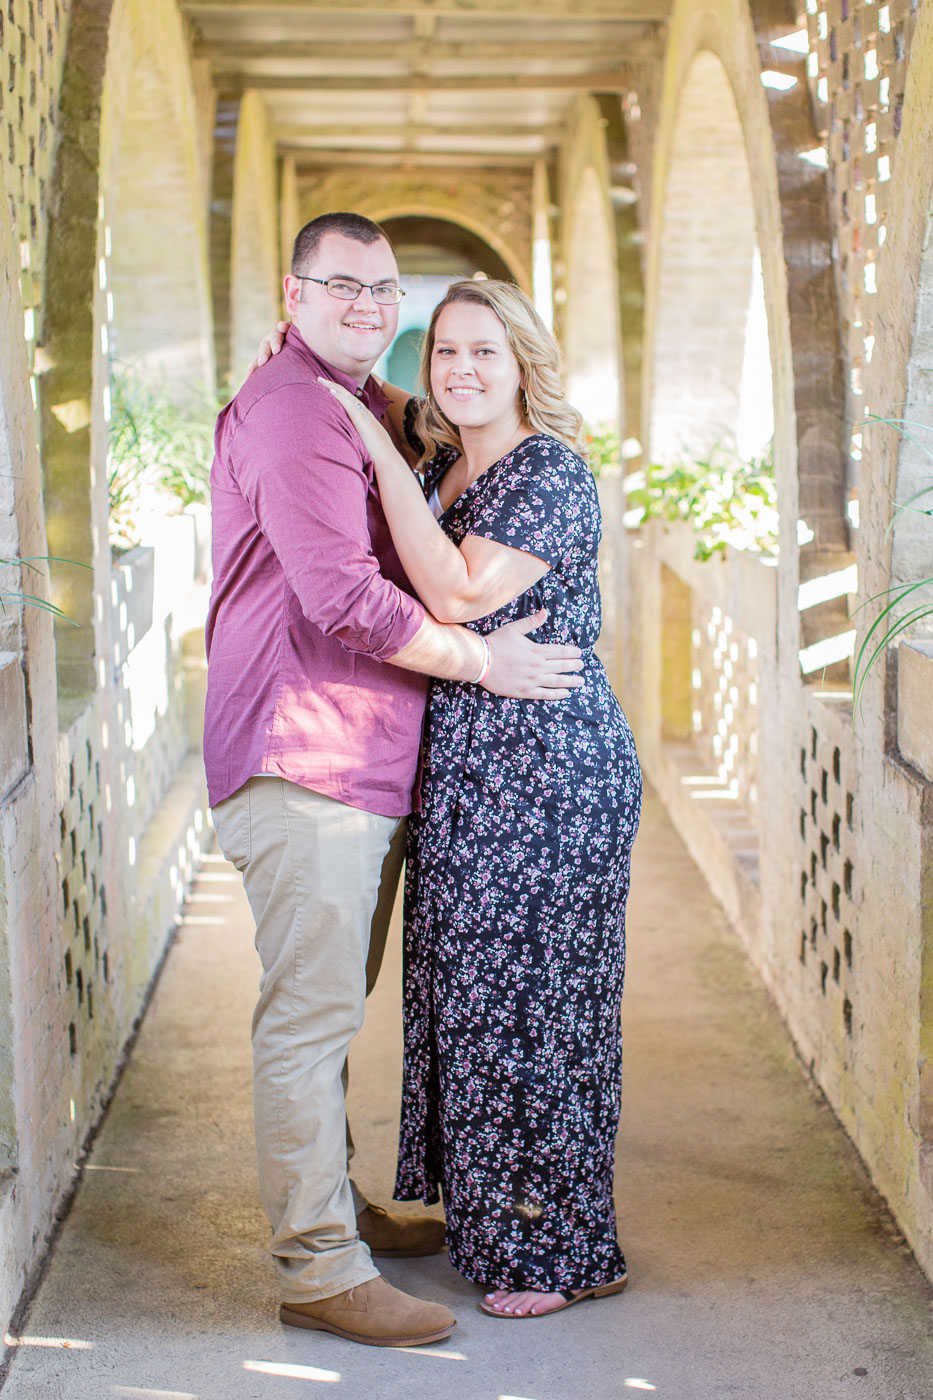 Engagement photo at Atalaya castle during Huntington beach state park engagement session